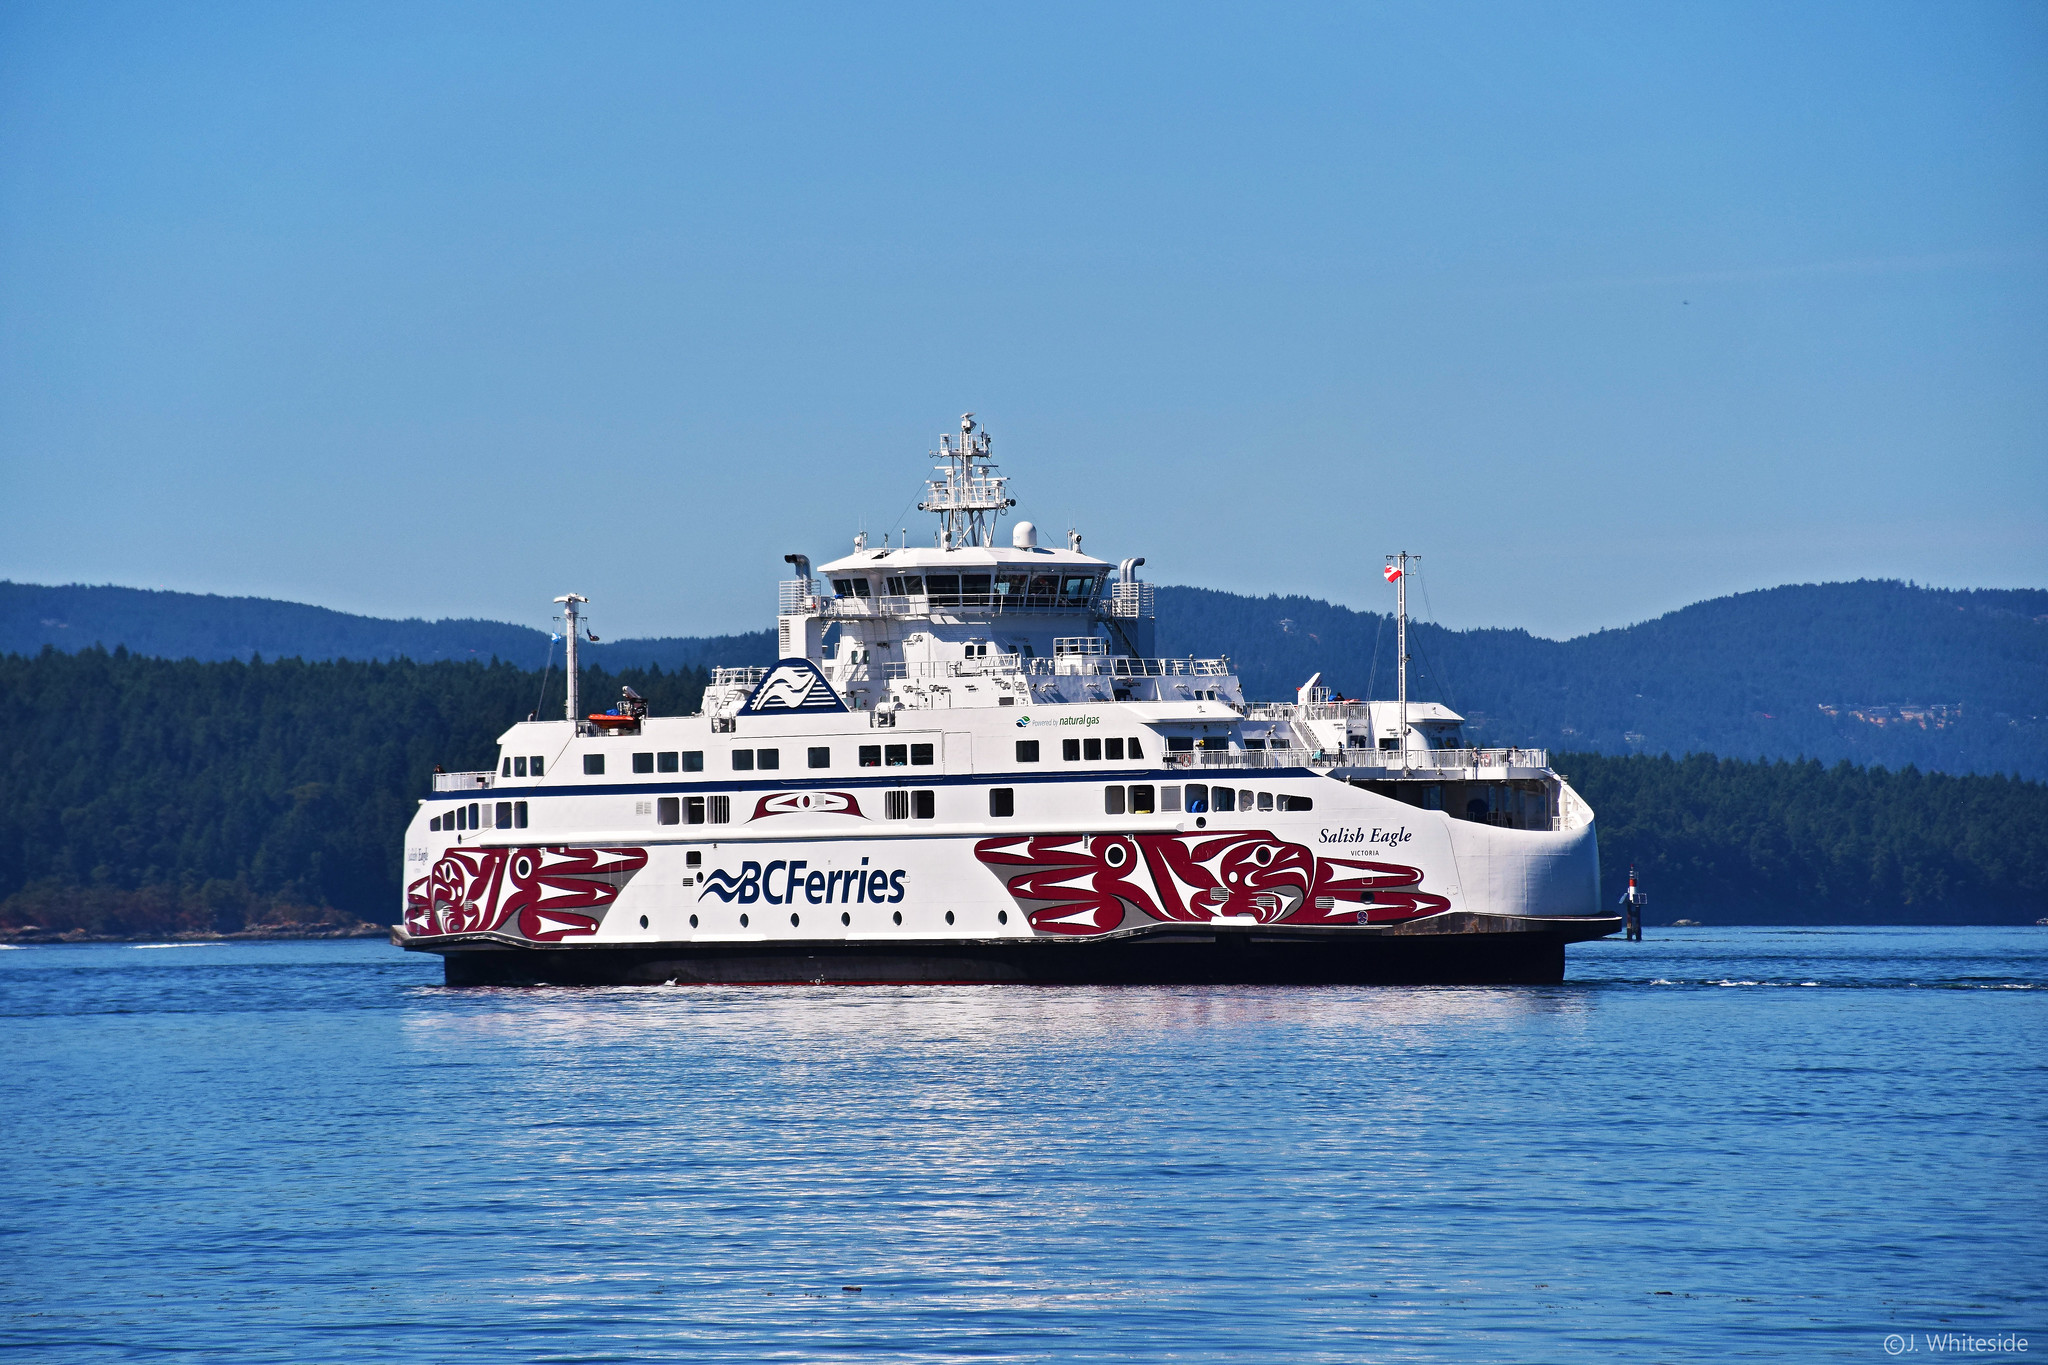 SALISH EAGLE - Photos & Discussion | West Coast Ferries Forum